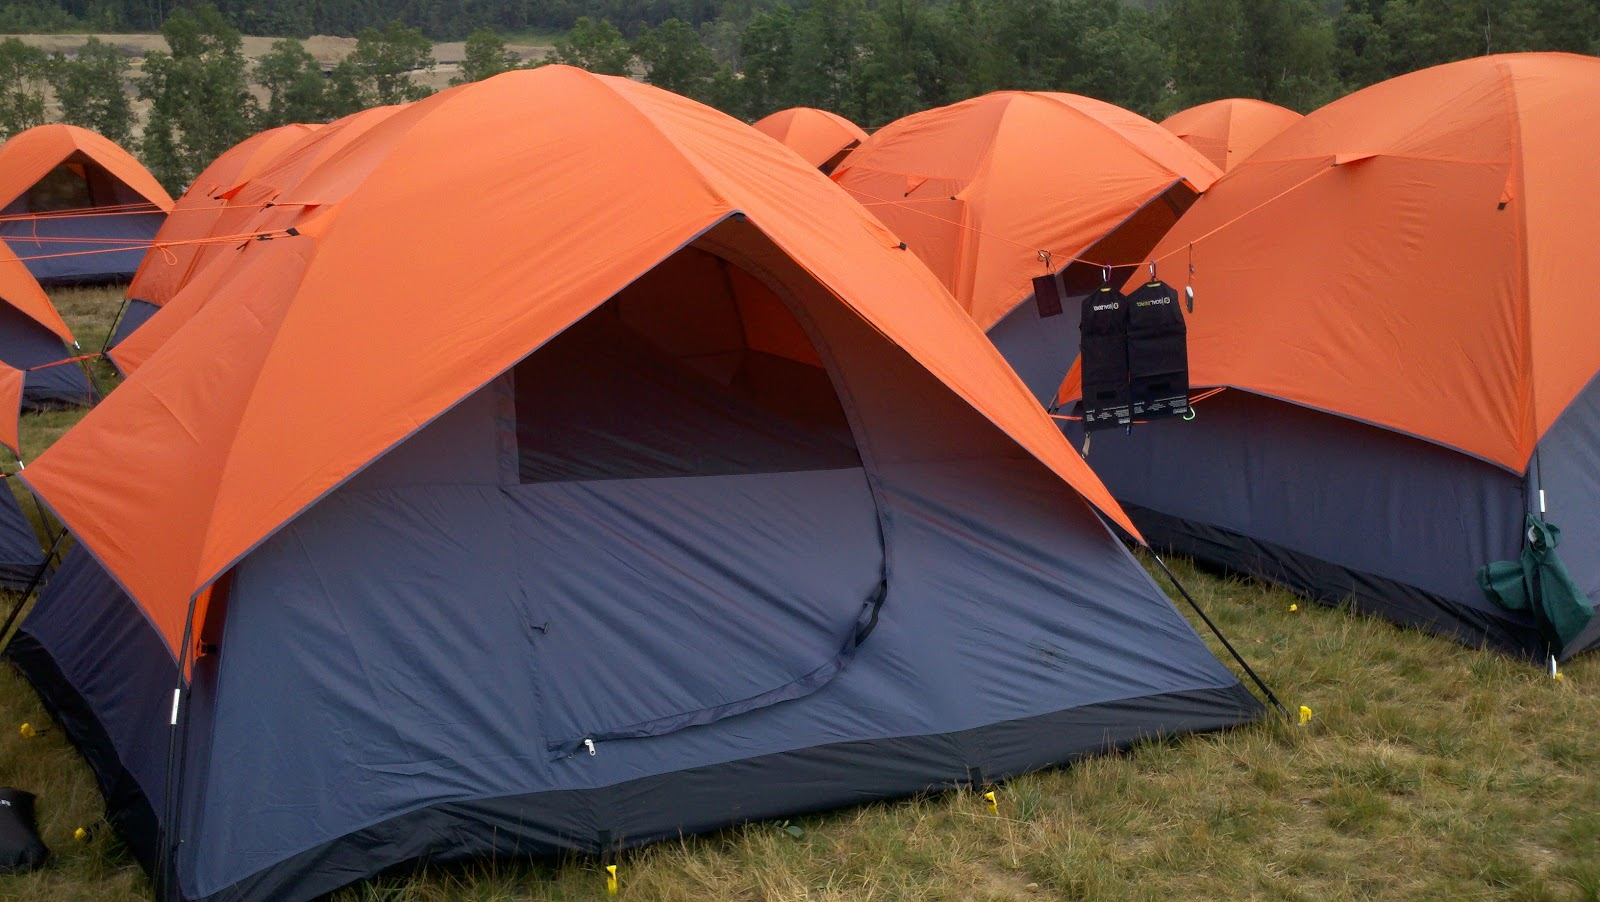 emeritbadges: Jamboree Tents